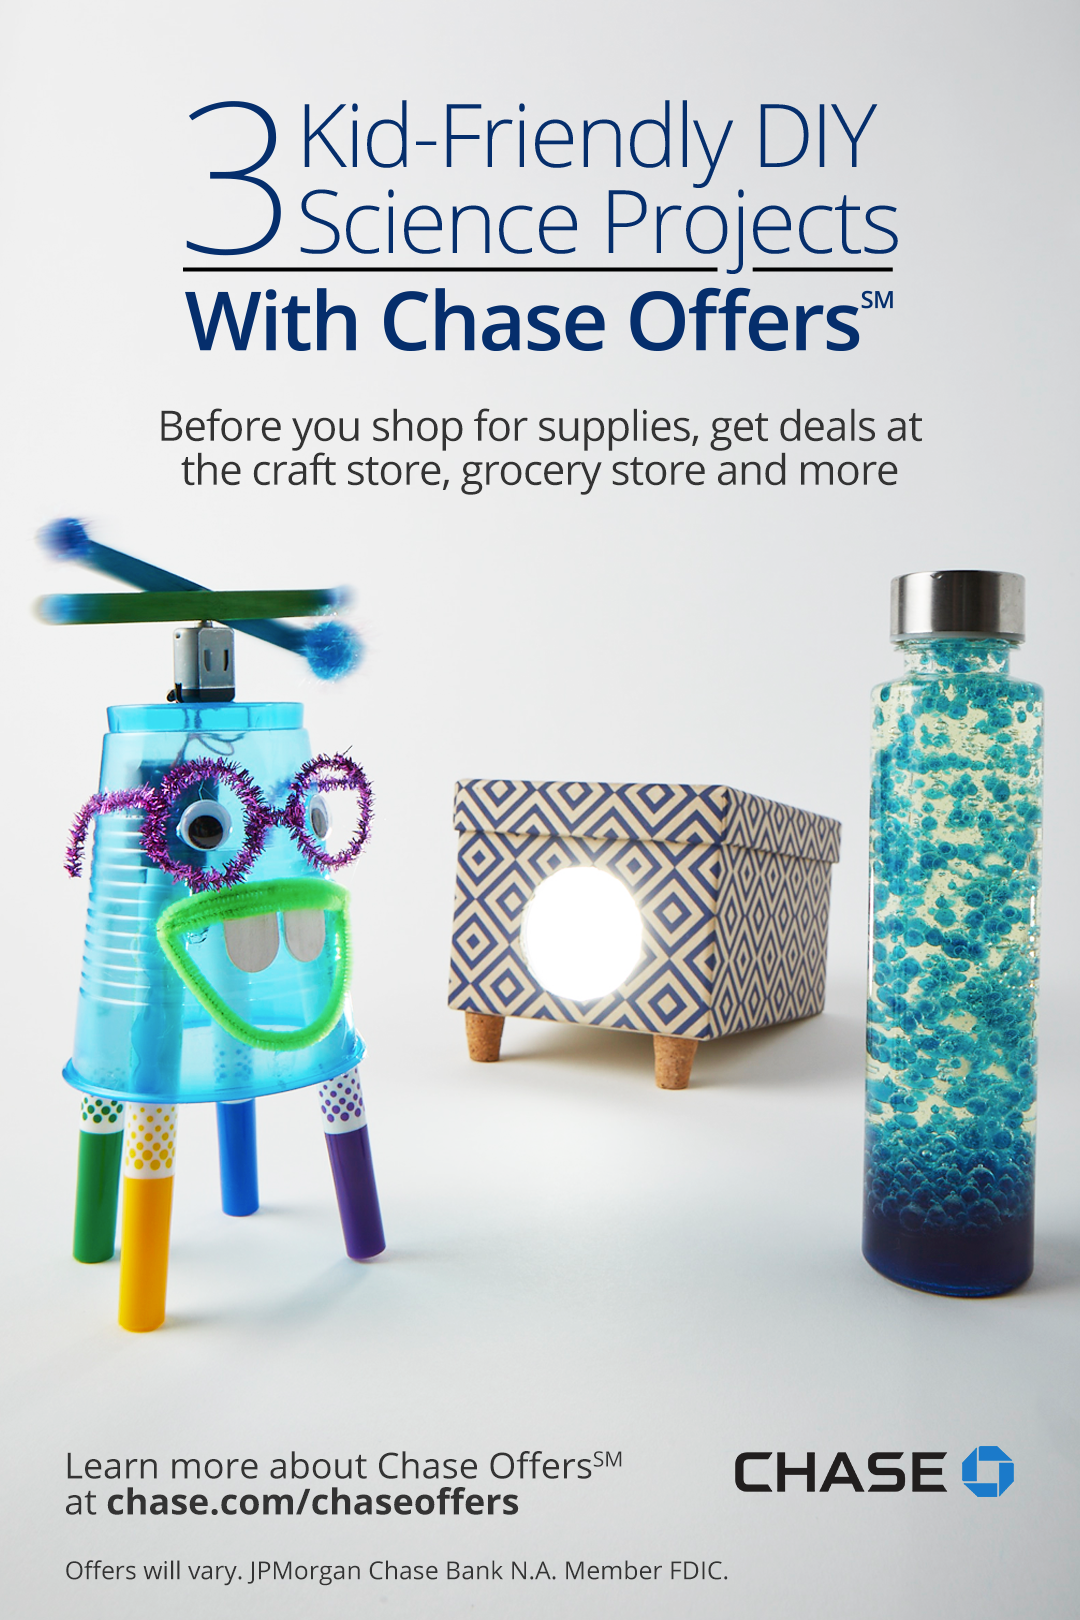 Activate Chase Offers℠ online or in the Chase Mobile® app